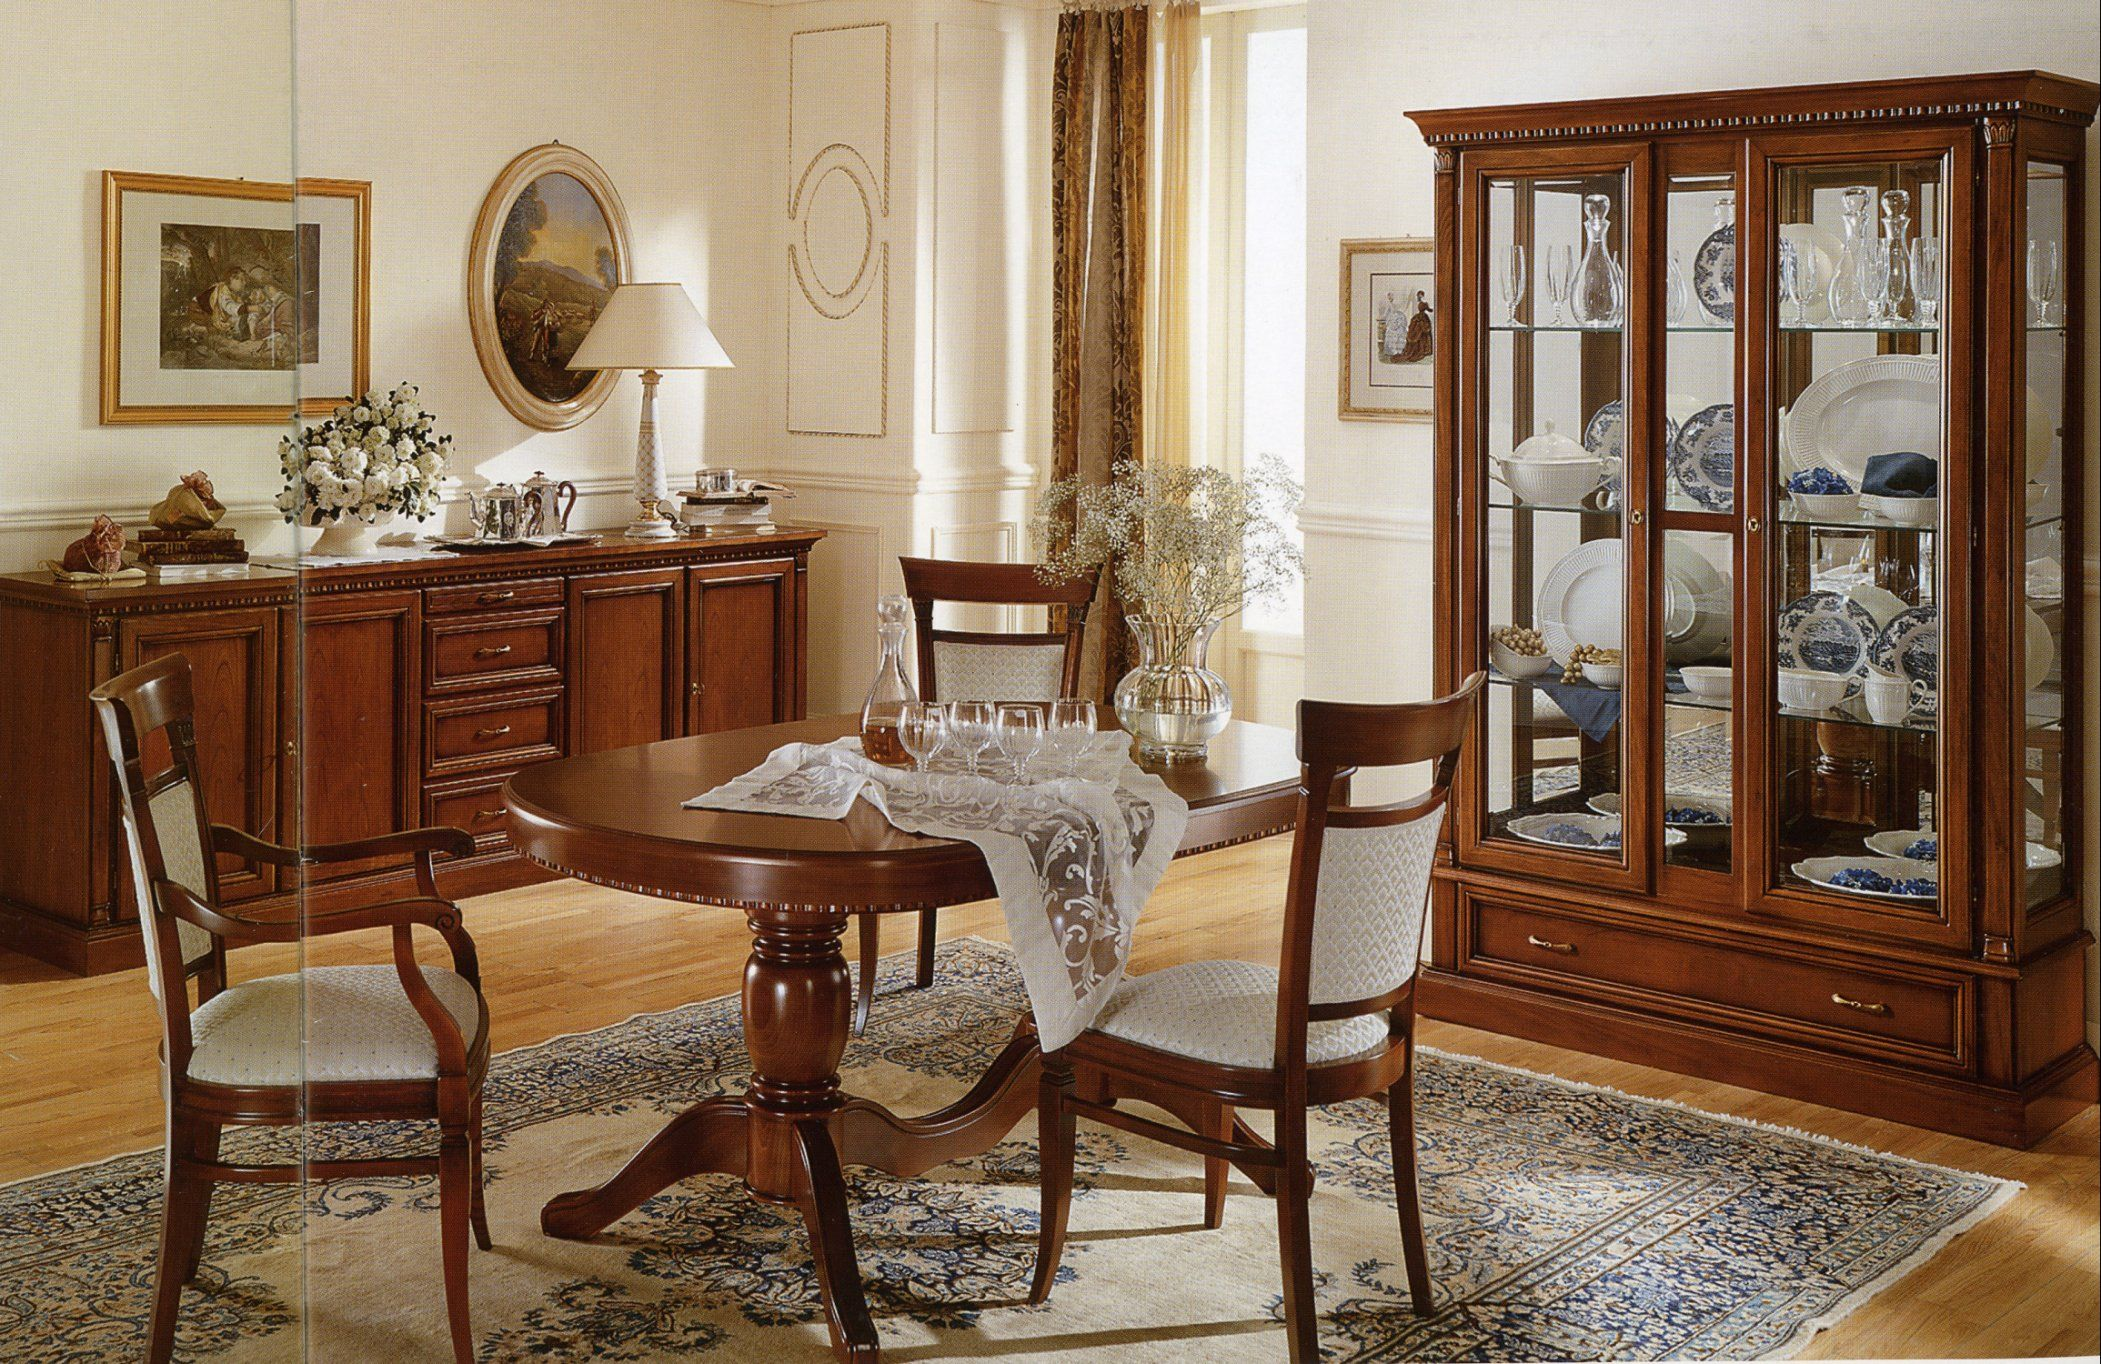 Traditional Wooden Dining Room Furniture Sets With Buffet Cabinets Pictures